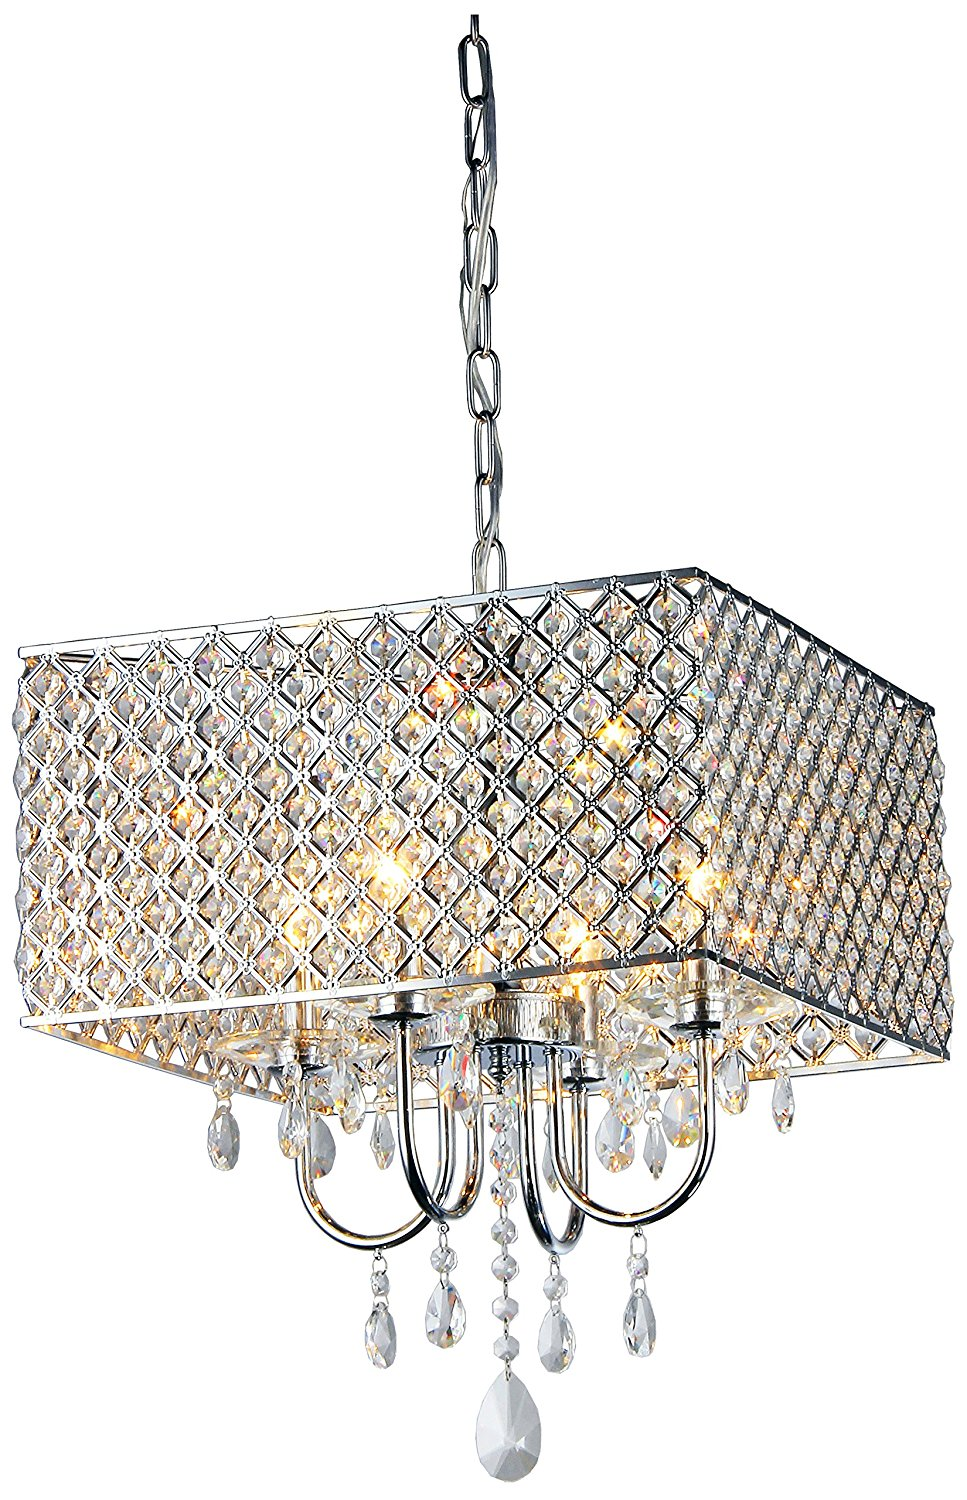 Whse of Tiffany Crystal Chandelier